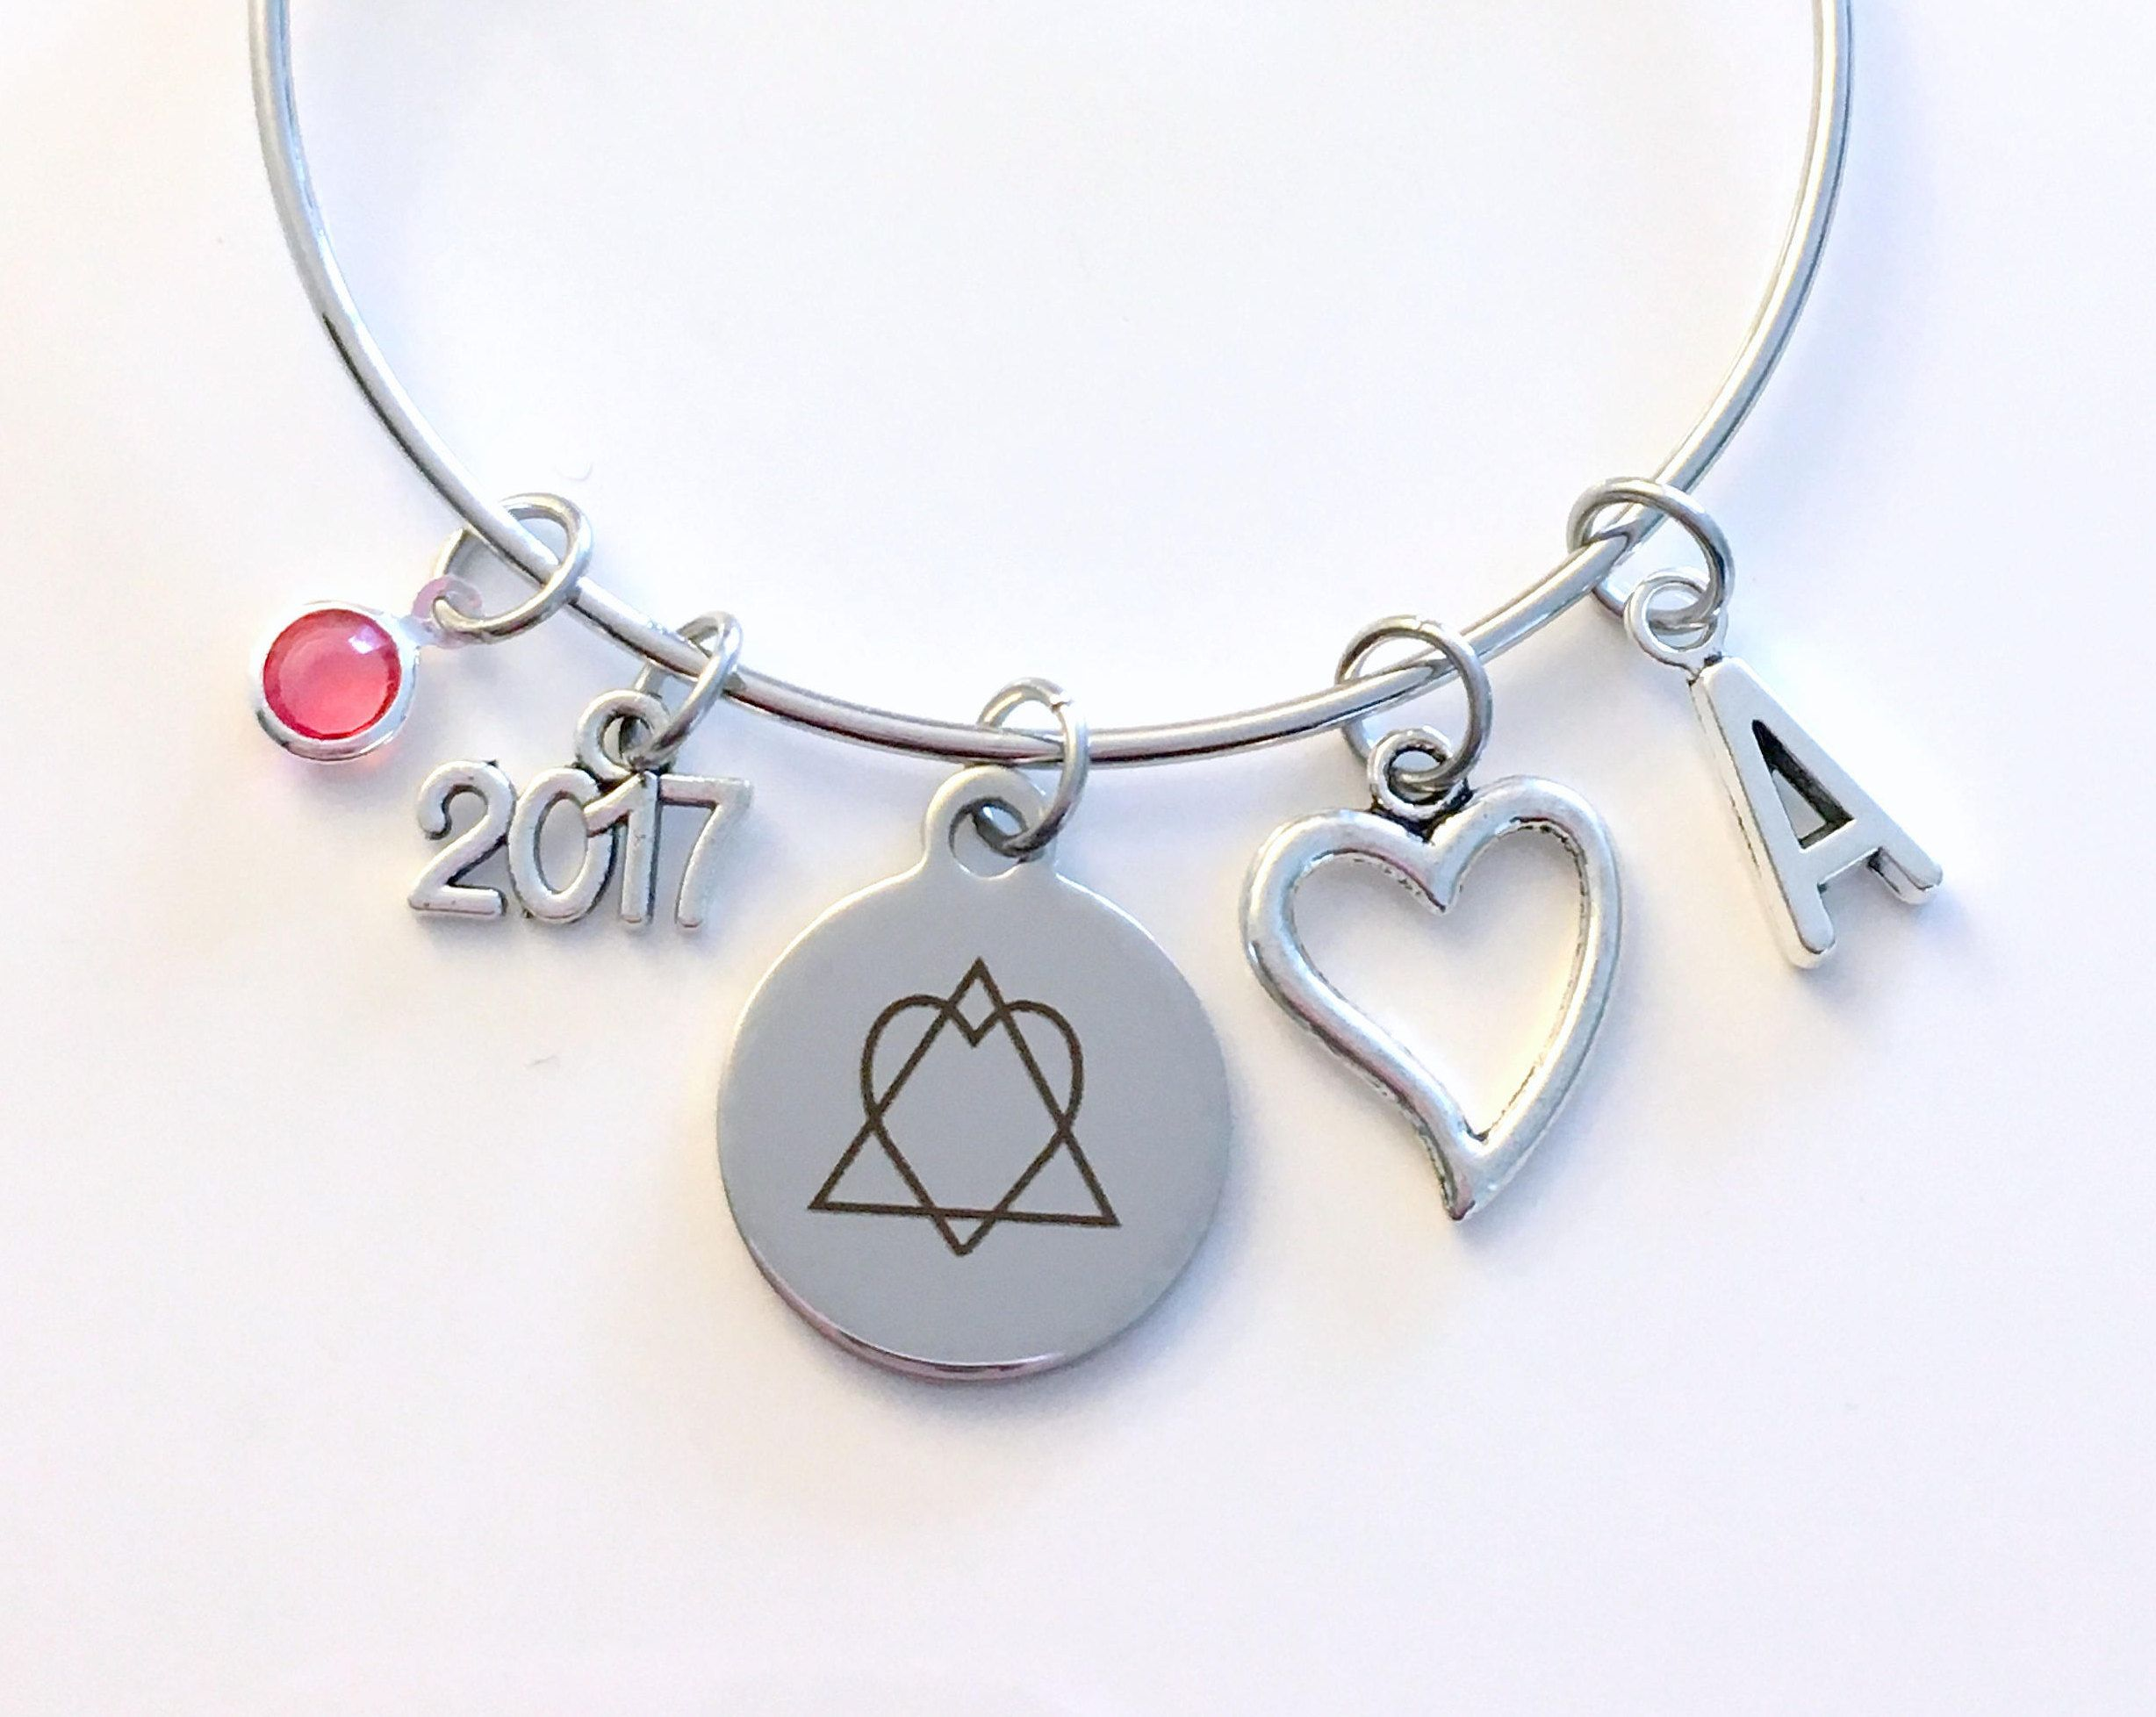 Adoption day bracelet gotcha 2017 2018 gift for new mom parent adoption day bracelet gotcha 2017 2018 gift for new mom parent jewelry adopt symbol charm bangle silver initial birthstone birthday present buycottarizona Image collections